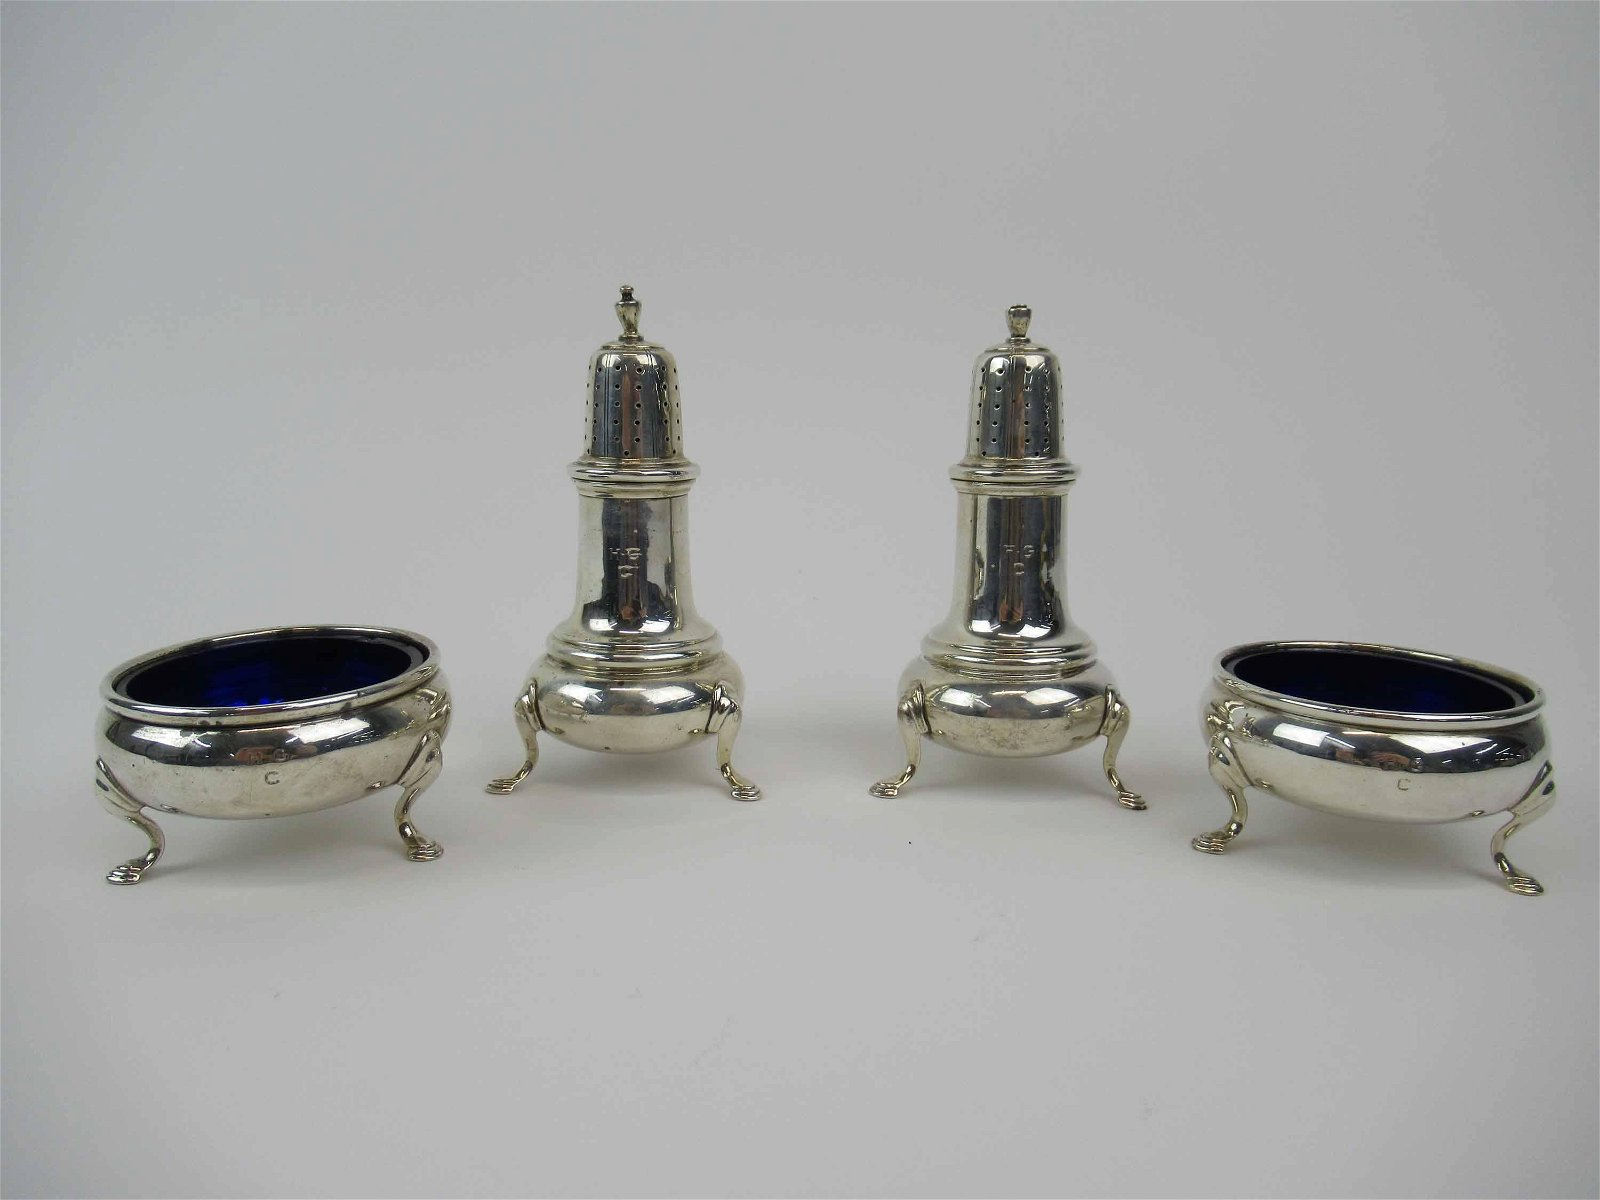 2 Pair of Sterling Silver Master Salt and Pepper